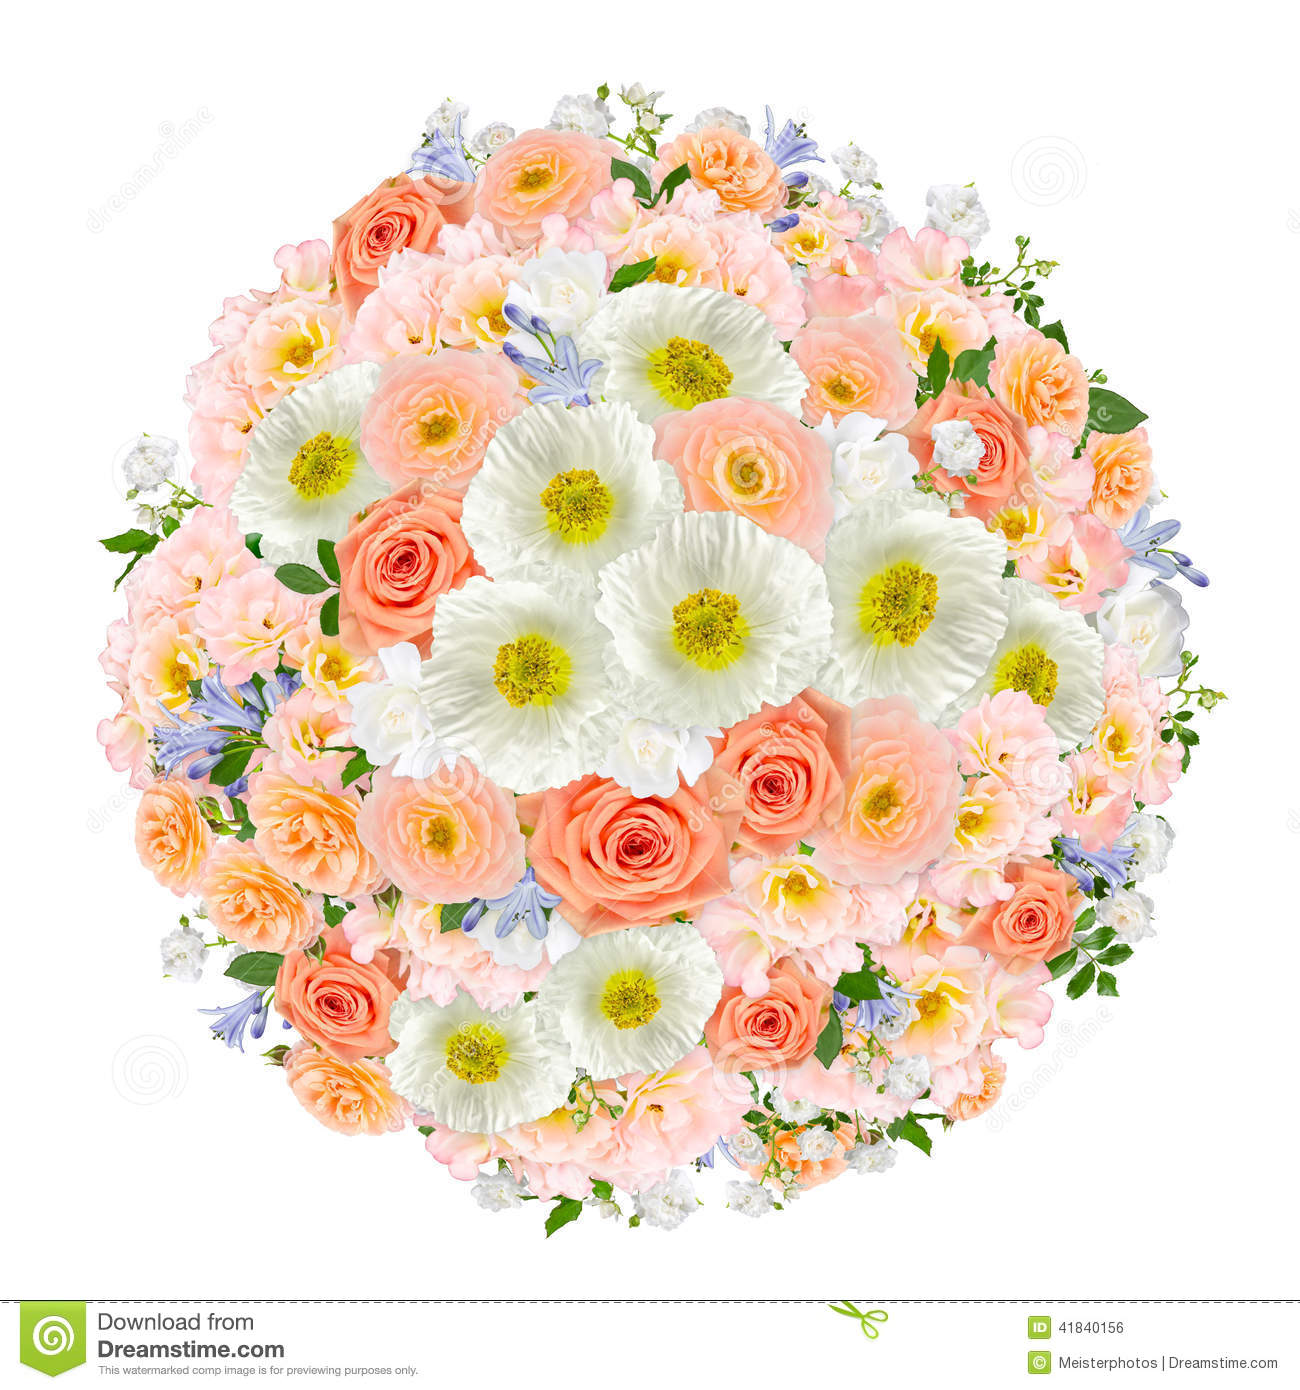 Pastel Flower Bouquet Collage Stock Image